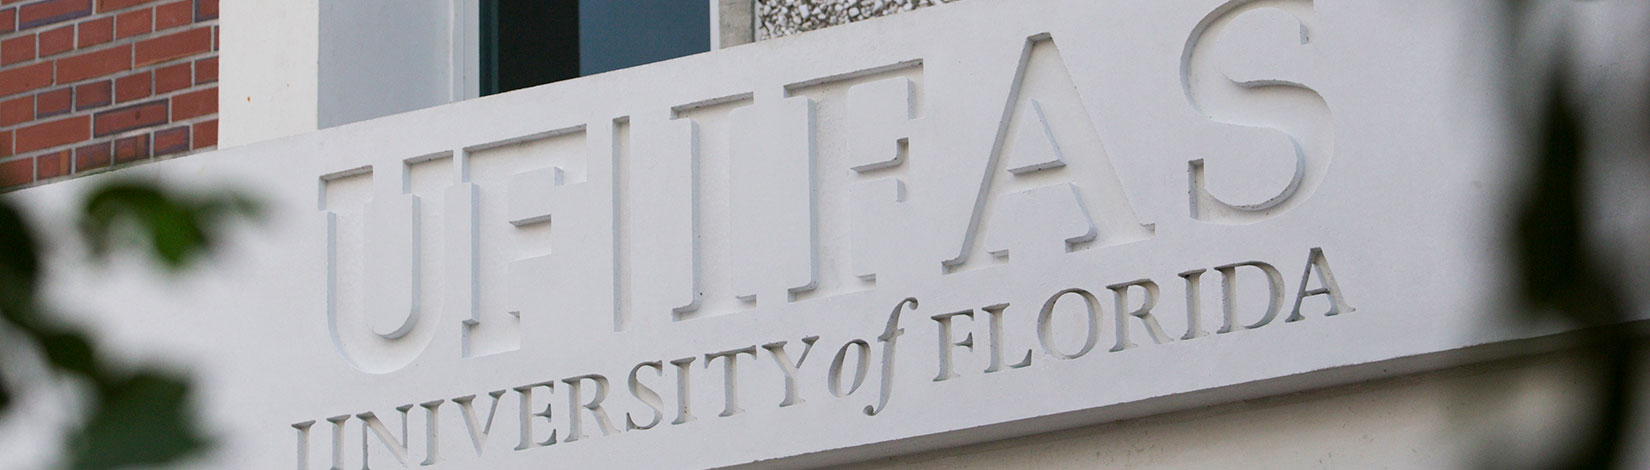 IFAS logo on building